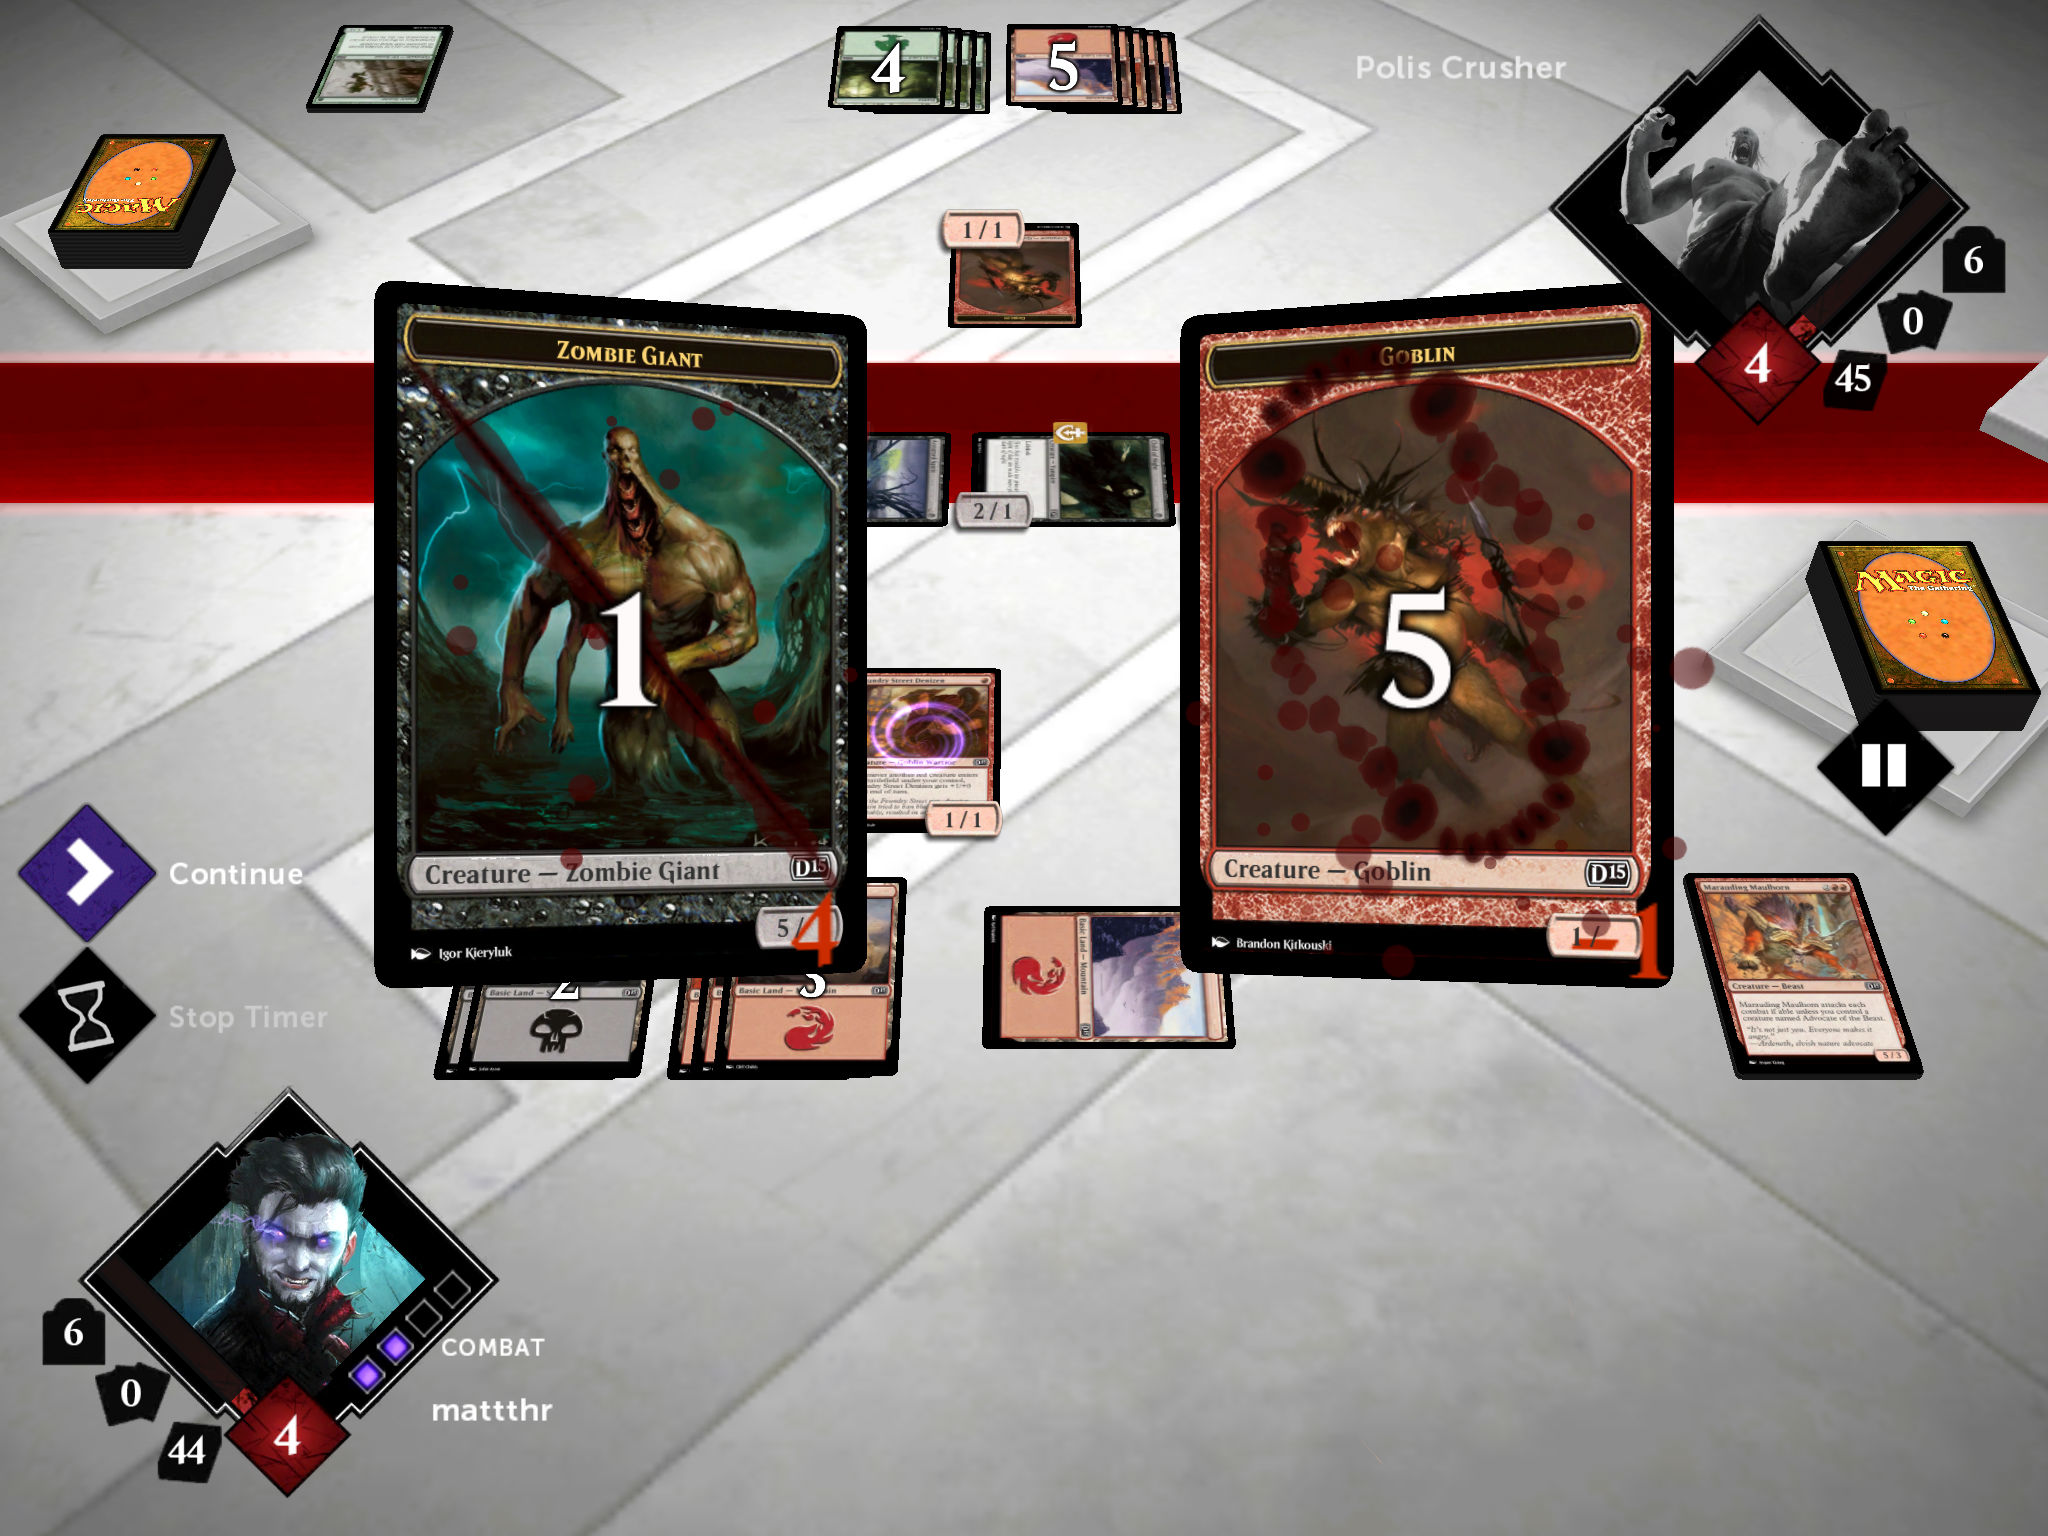 Magic 2015, the Silver Award winning digital version of the classic CCG, is now out for Android